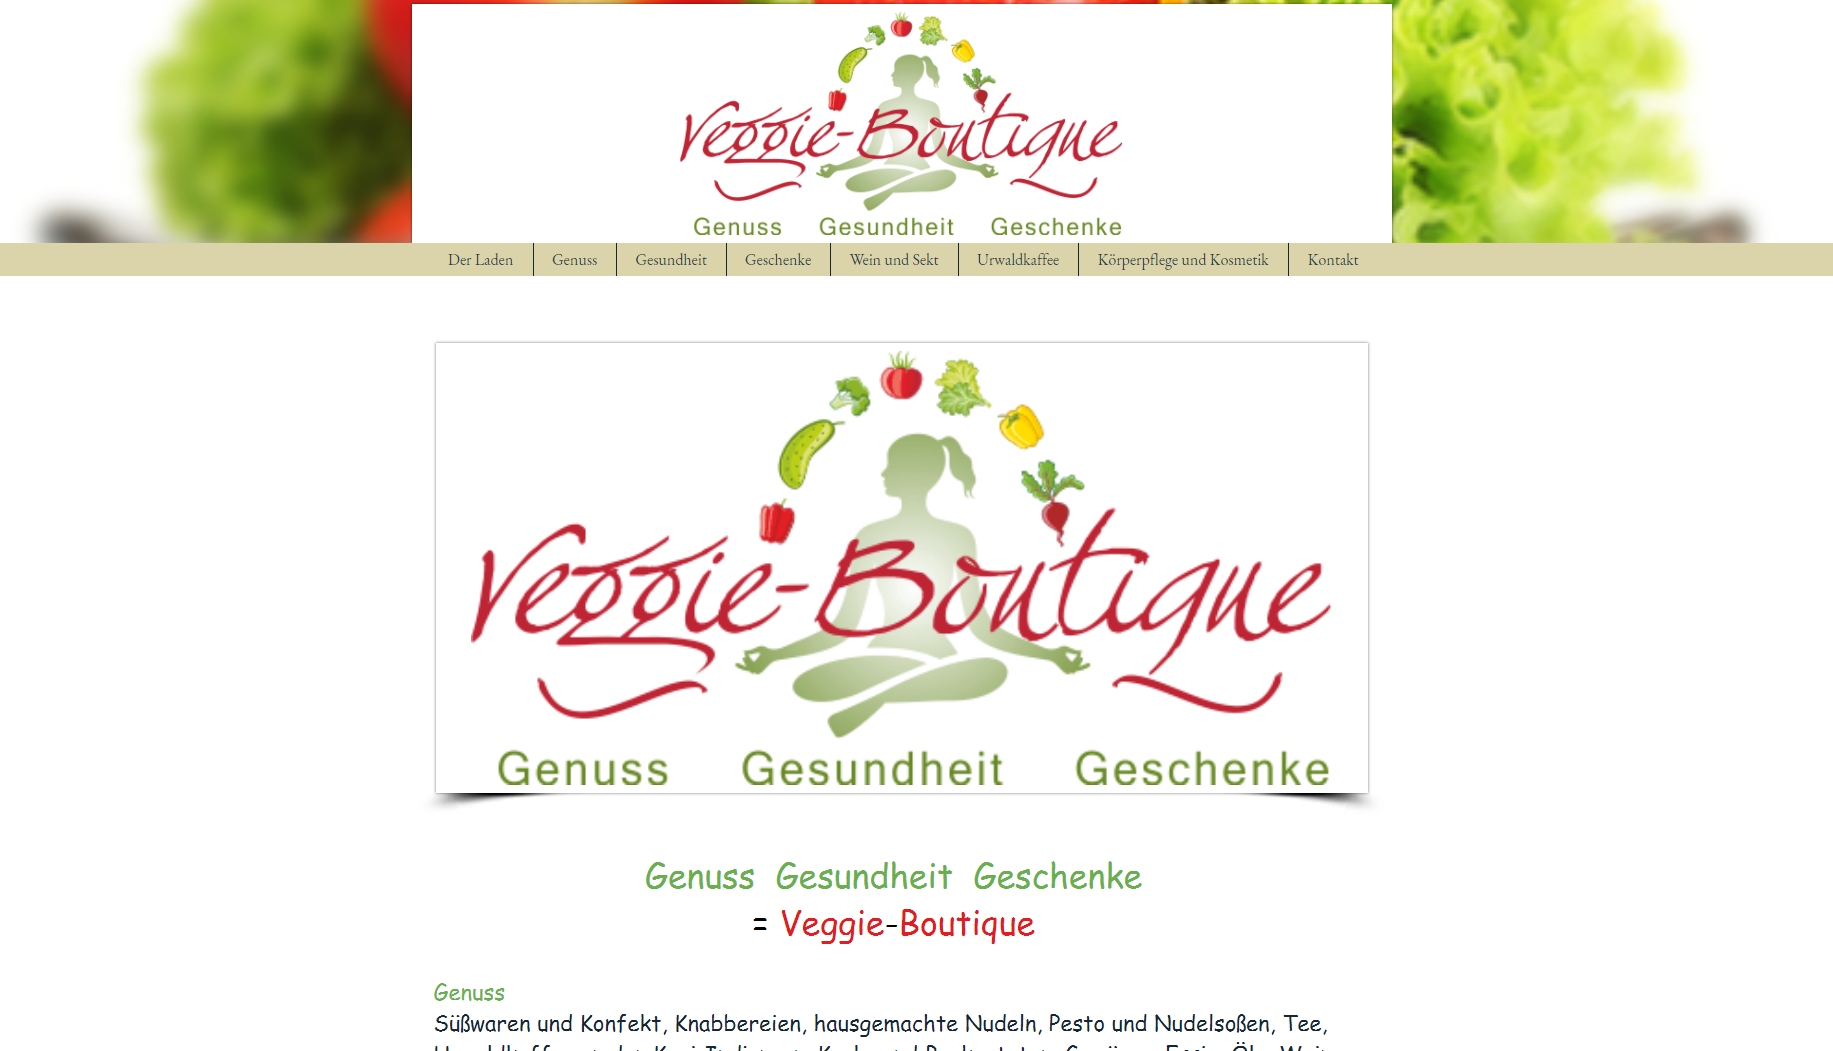 Veggie-Boutique